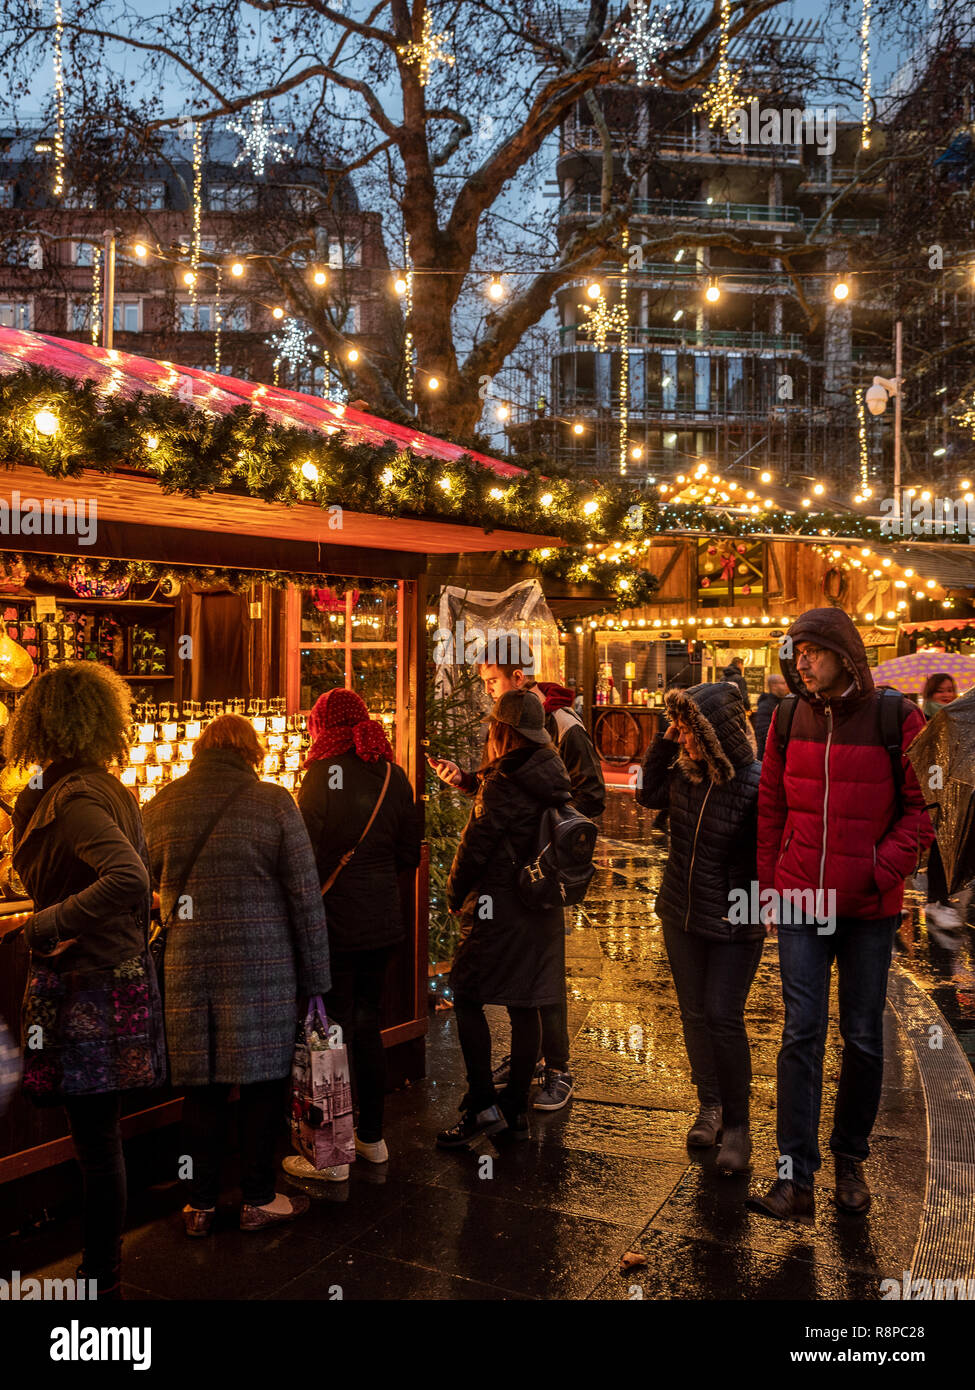 Stalls at Leicester Square Christmas Market, London, UK. - Stock Image